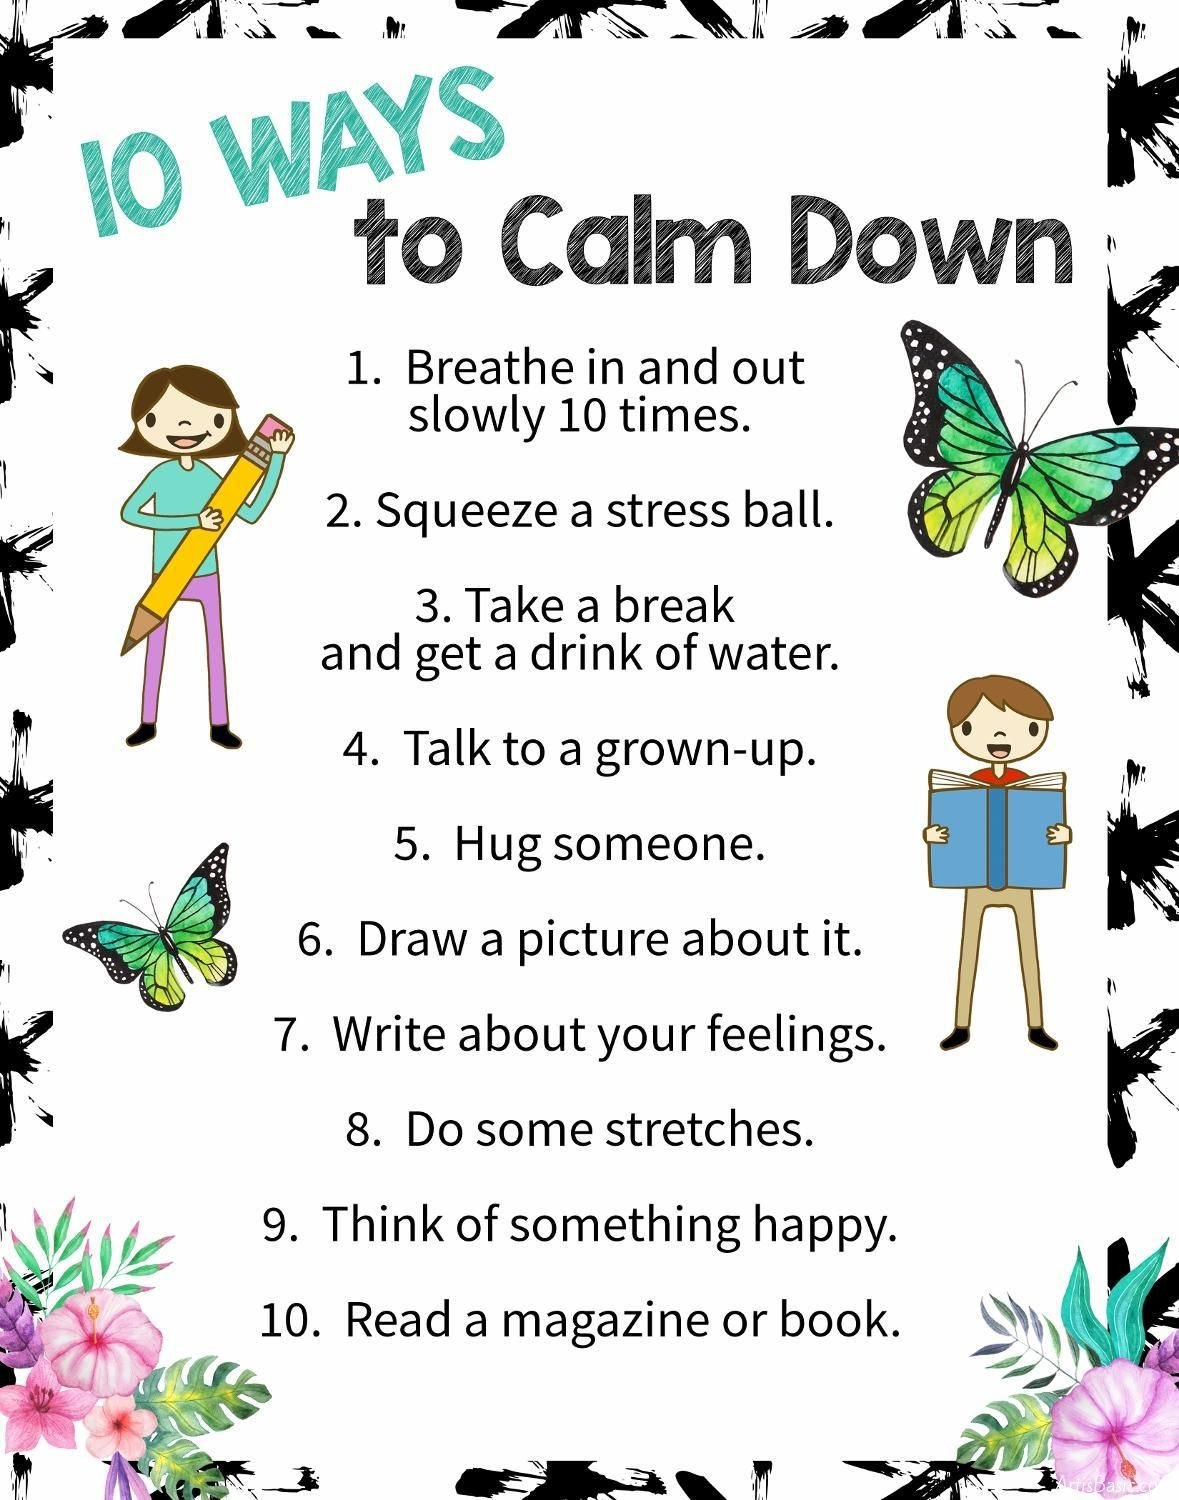 Calm Down Sandwich Template 10 Ways to Calm Down A Free Printable Poster